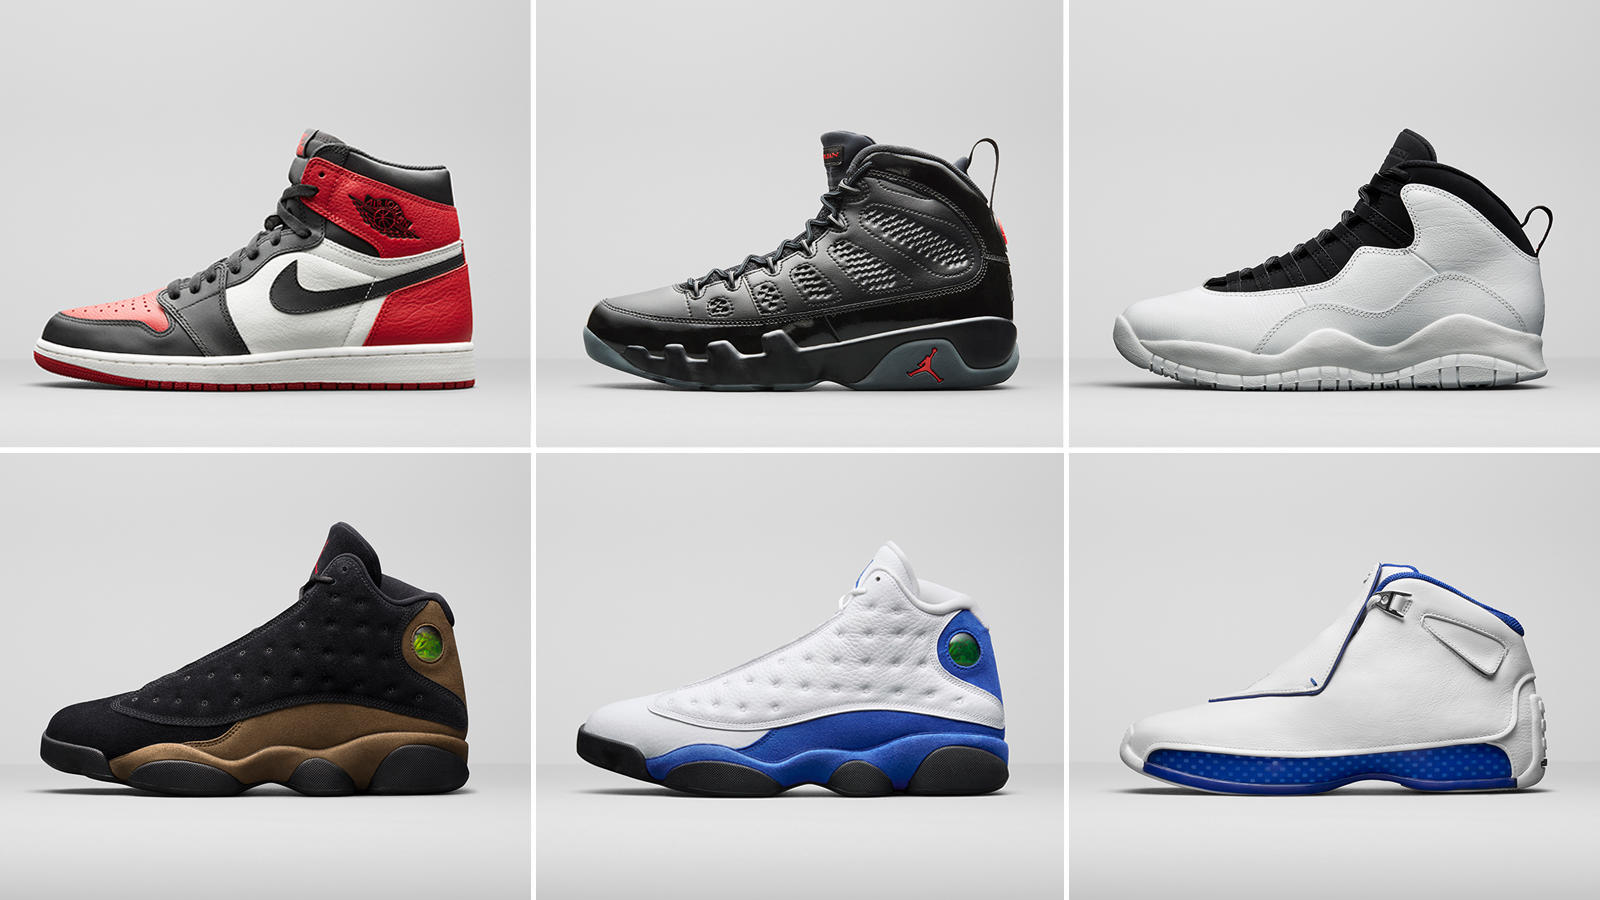 866f8d9d1c3d Jordan Brand Unveils Select Styles for the Spring Season - Nike News